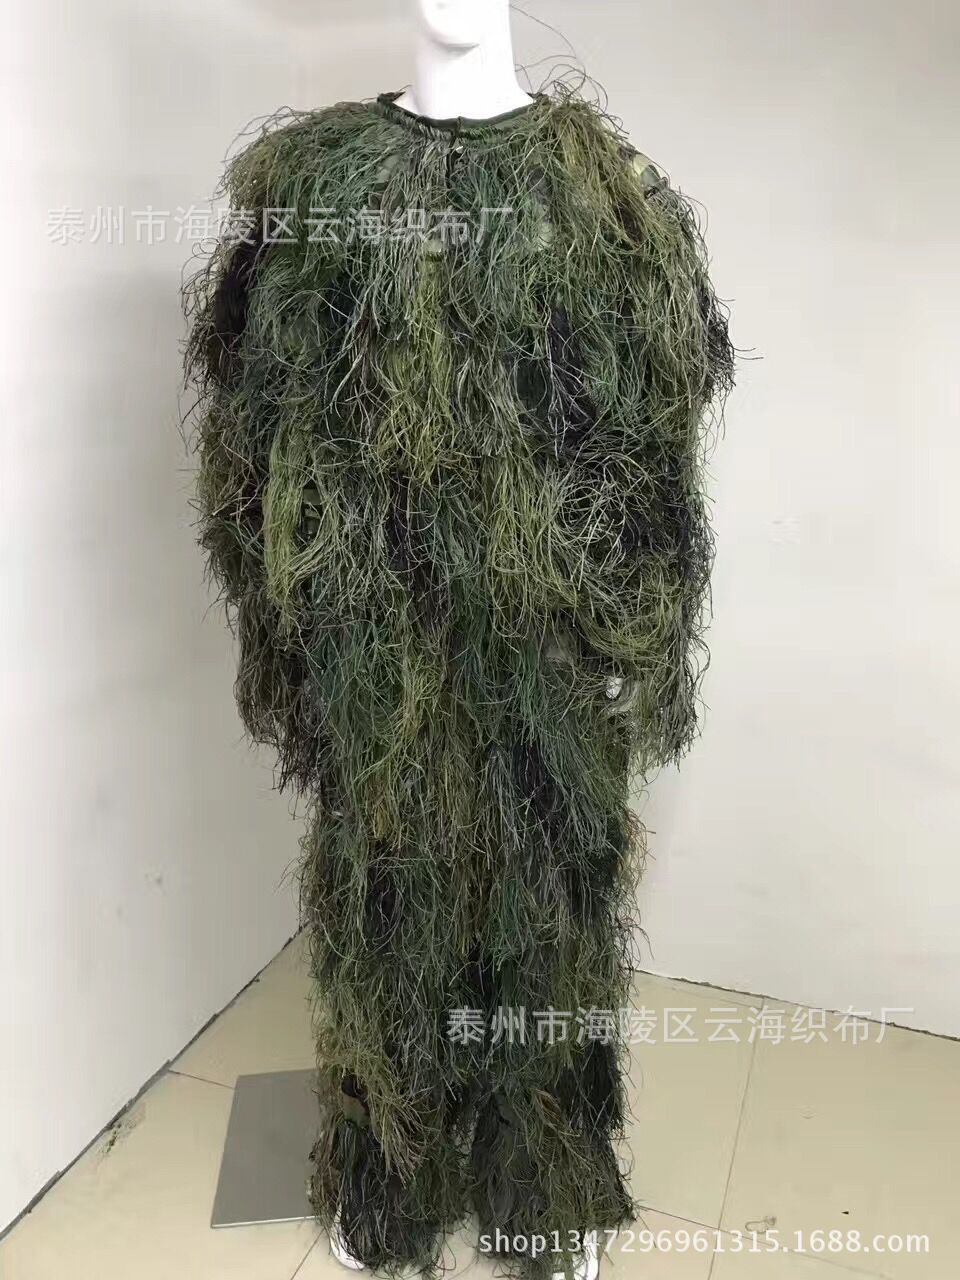 Jungle Filament Camouflage Green Velcro Clothes Ghillie Suit Camouflage CS Costume Camouflage